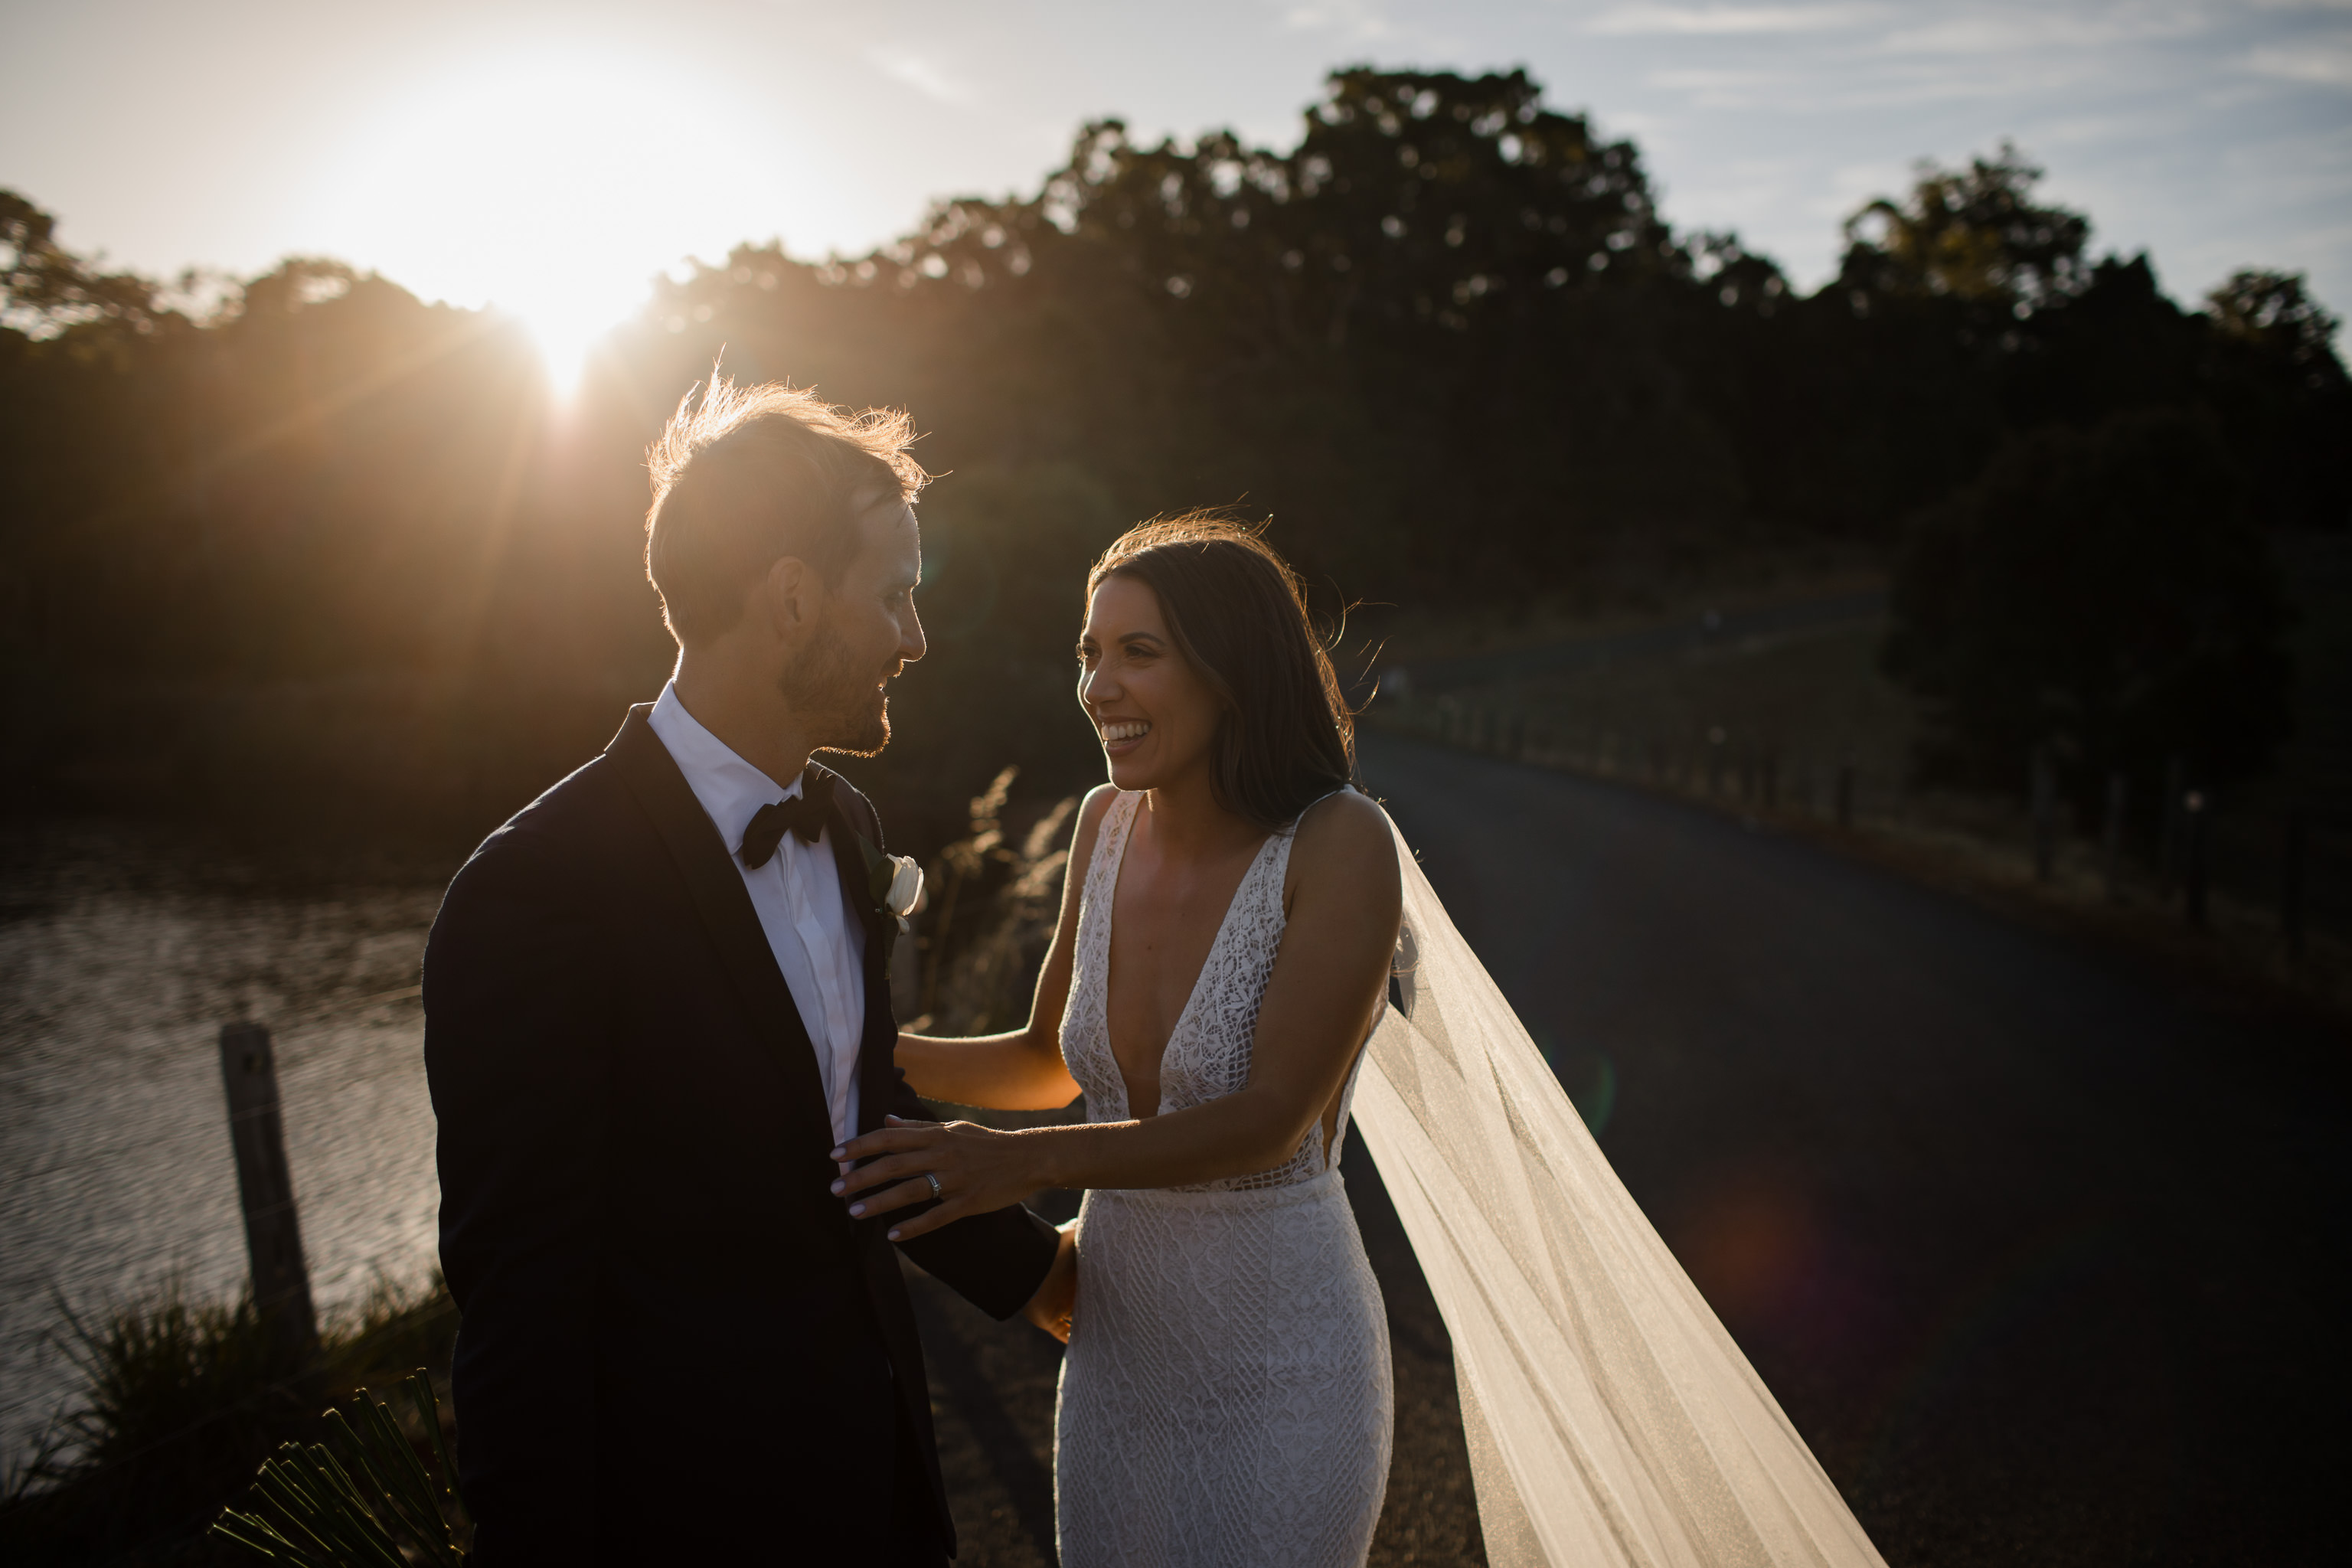 Groom and bride laughing and embracing while her veil blows in the wind and glows in the golden sunset light against a dark background